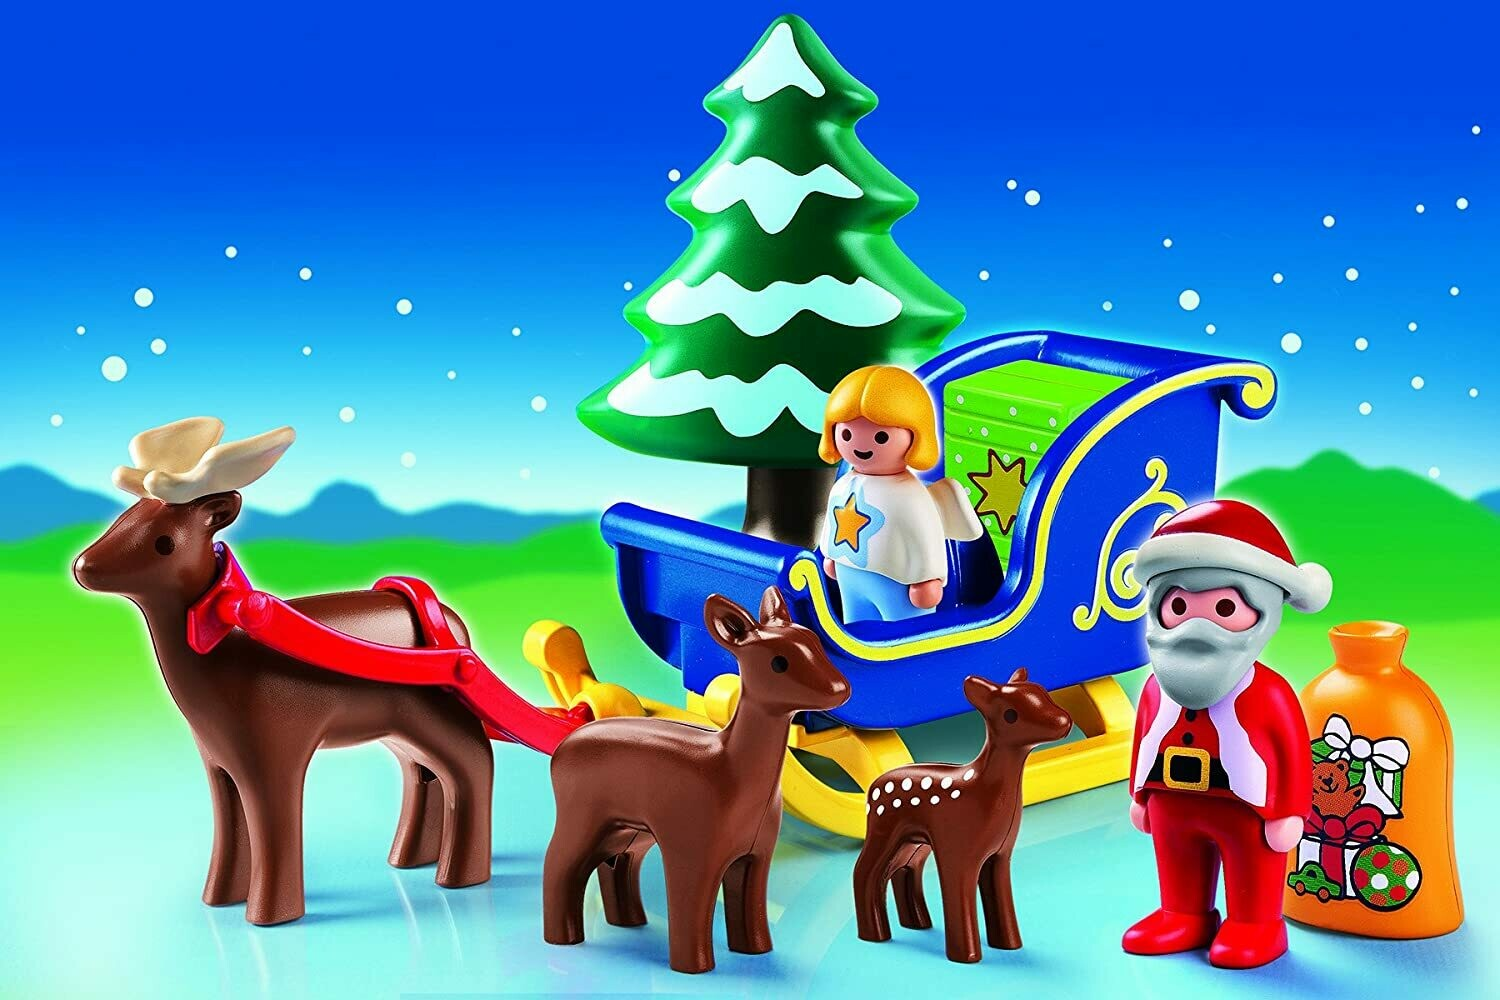 Playmobil; Santa Claus With Reindeer Sleigh